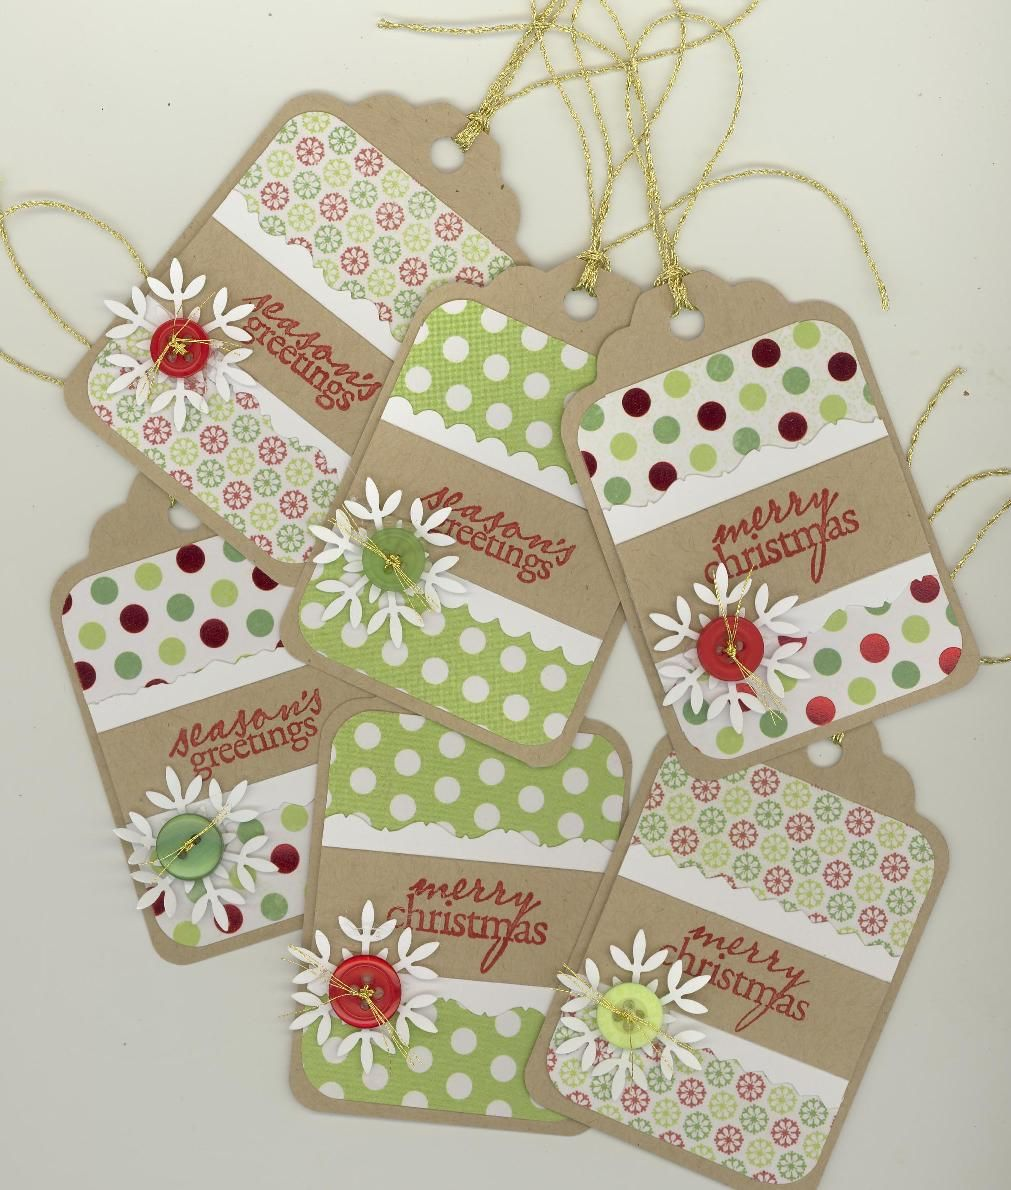 Christmas Gift Tags Pinterest.Pinterest Inspired Christmas Tags Paper Crafts Diy